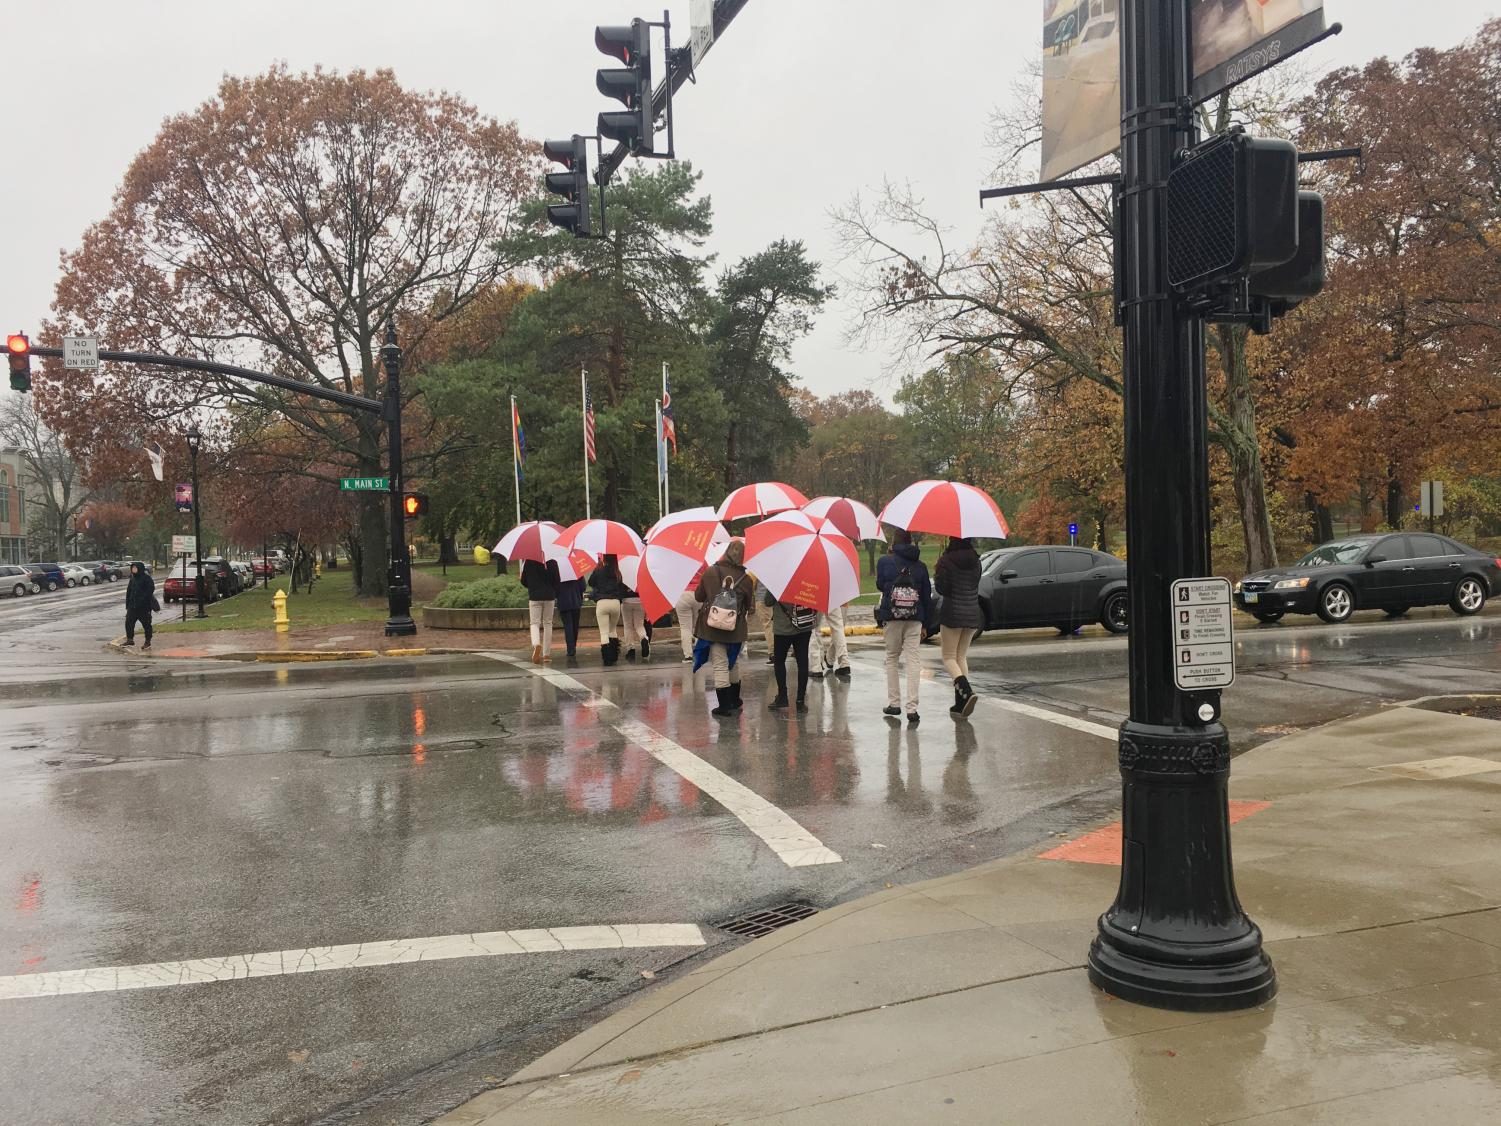 A tour guide leads a group on a campus tour. Demographic factors are impacting admissions strategies at colleges and universities across the country.